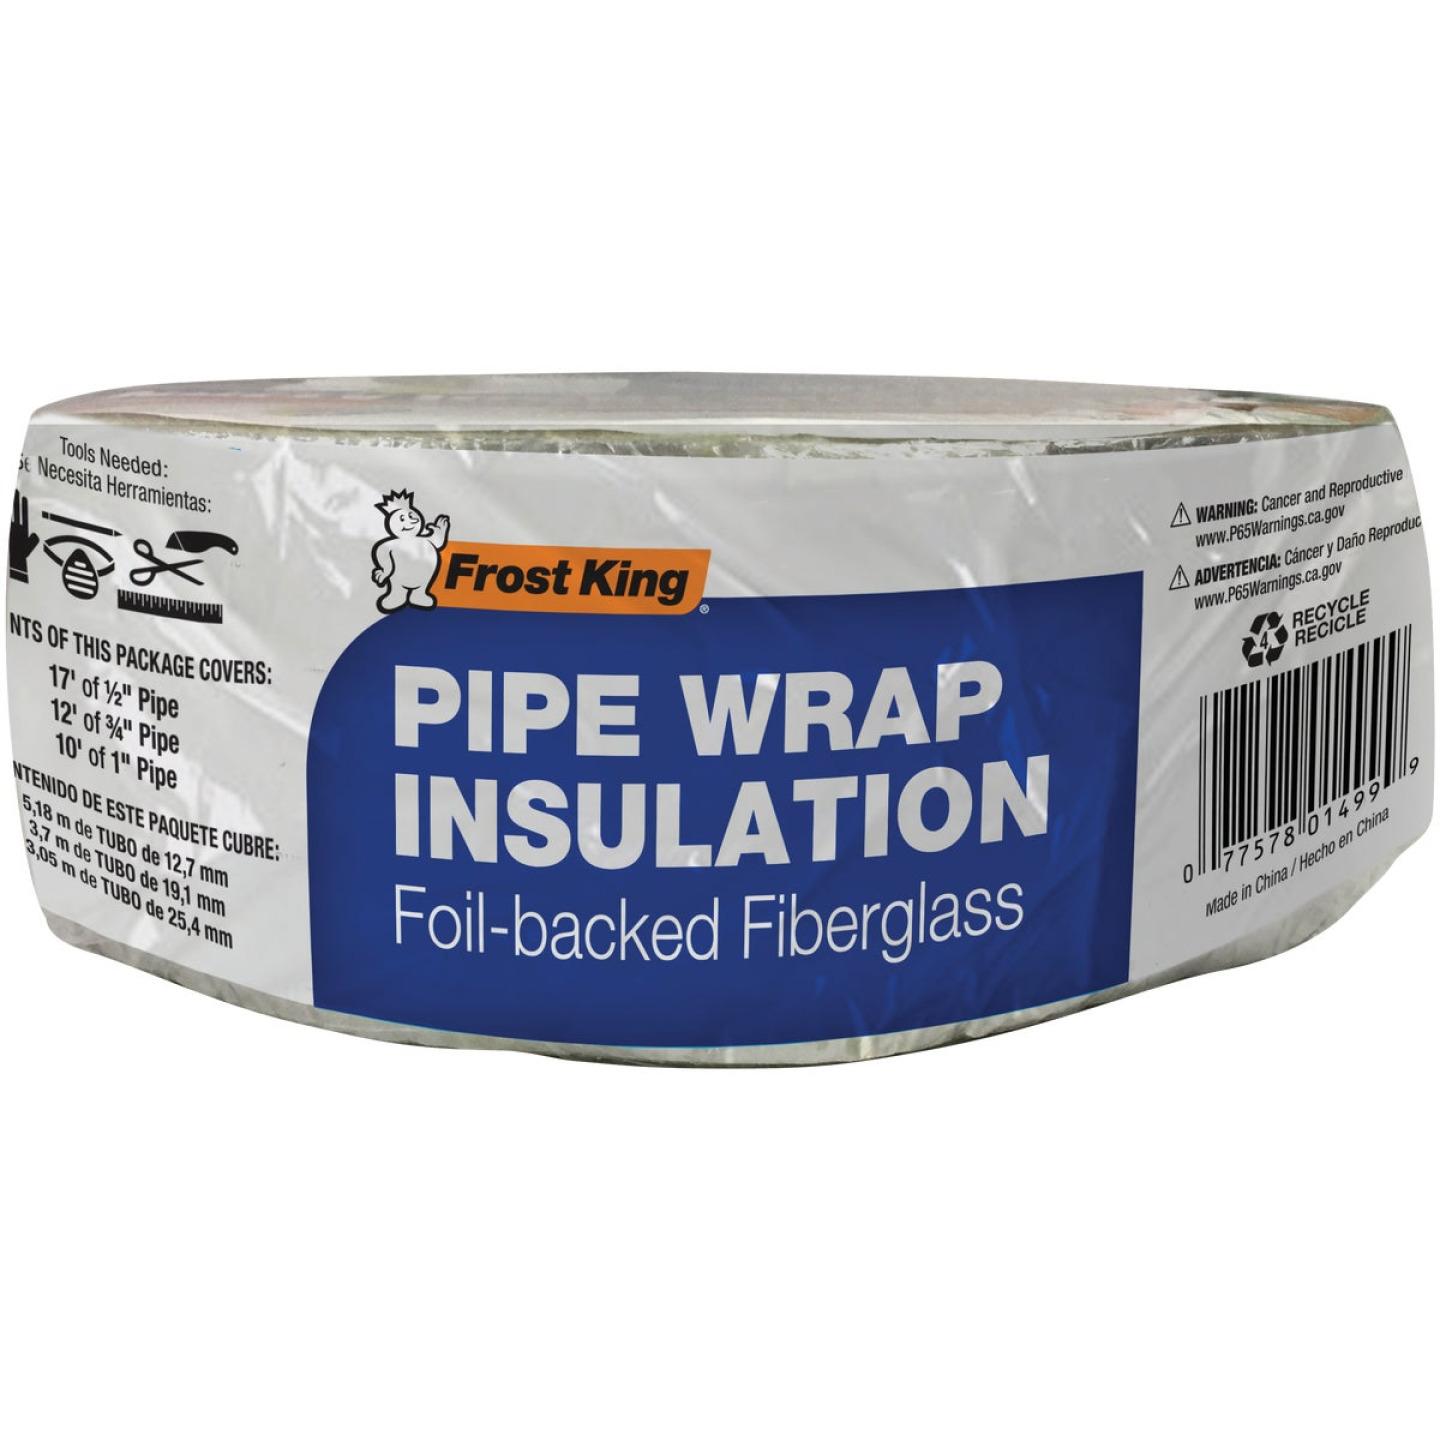 Frost King 1 In. x 3 In. x 25 Ft. Wall Fiberglass Pipe Insulation Wrap Image 2